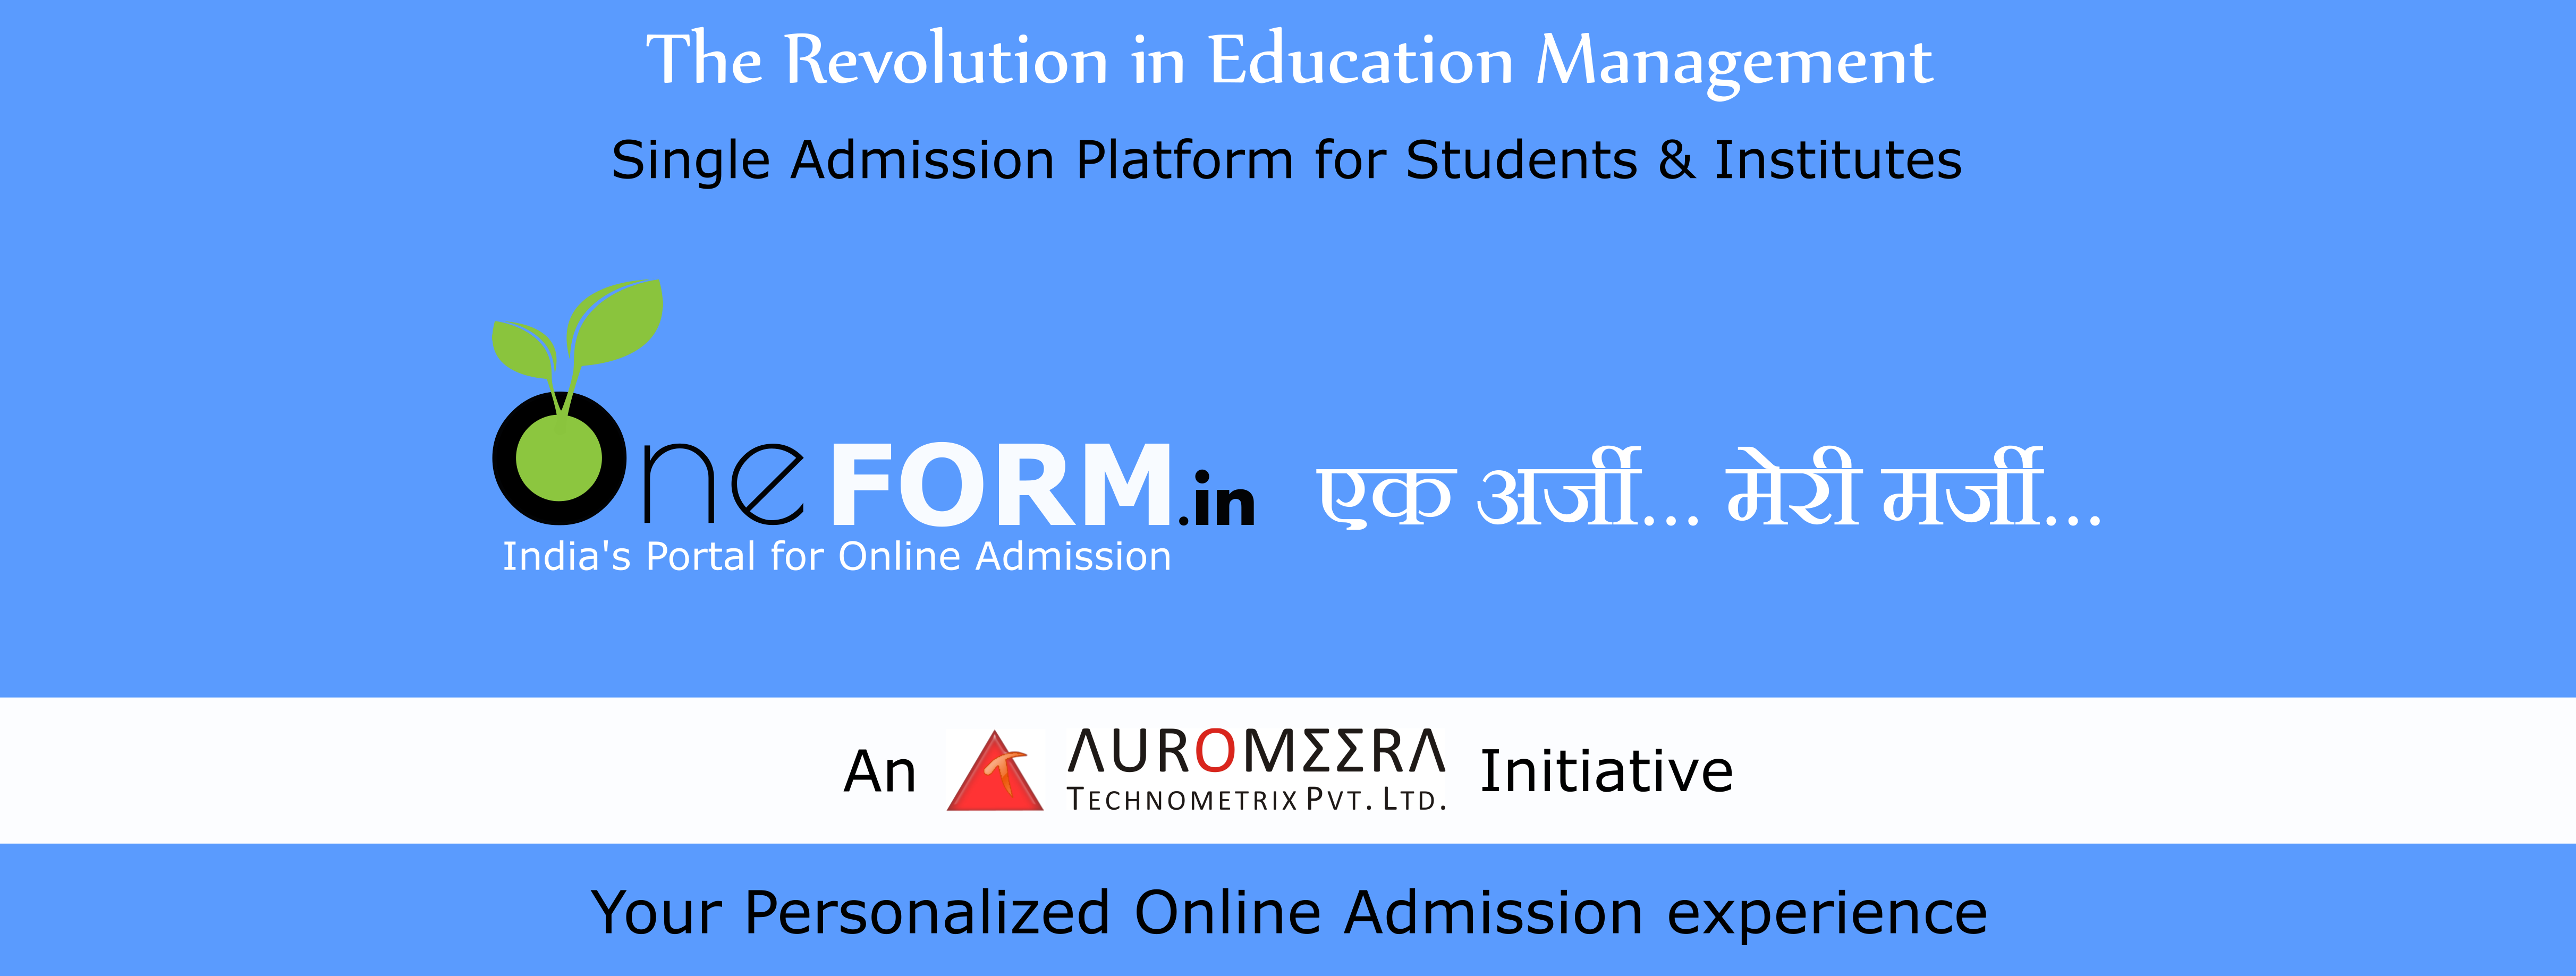 OneFORM.in | India's Portal for Online Admission